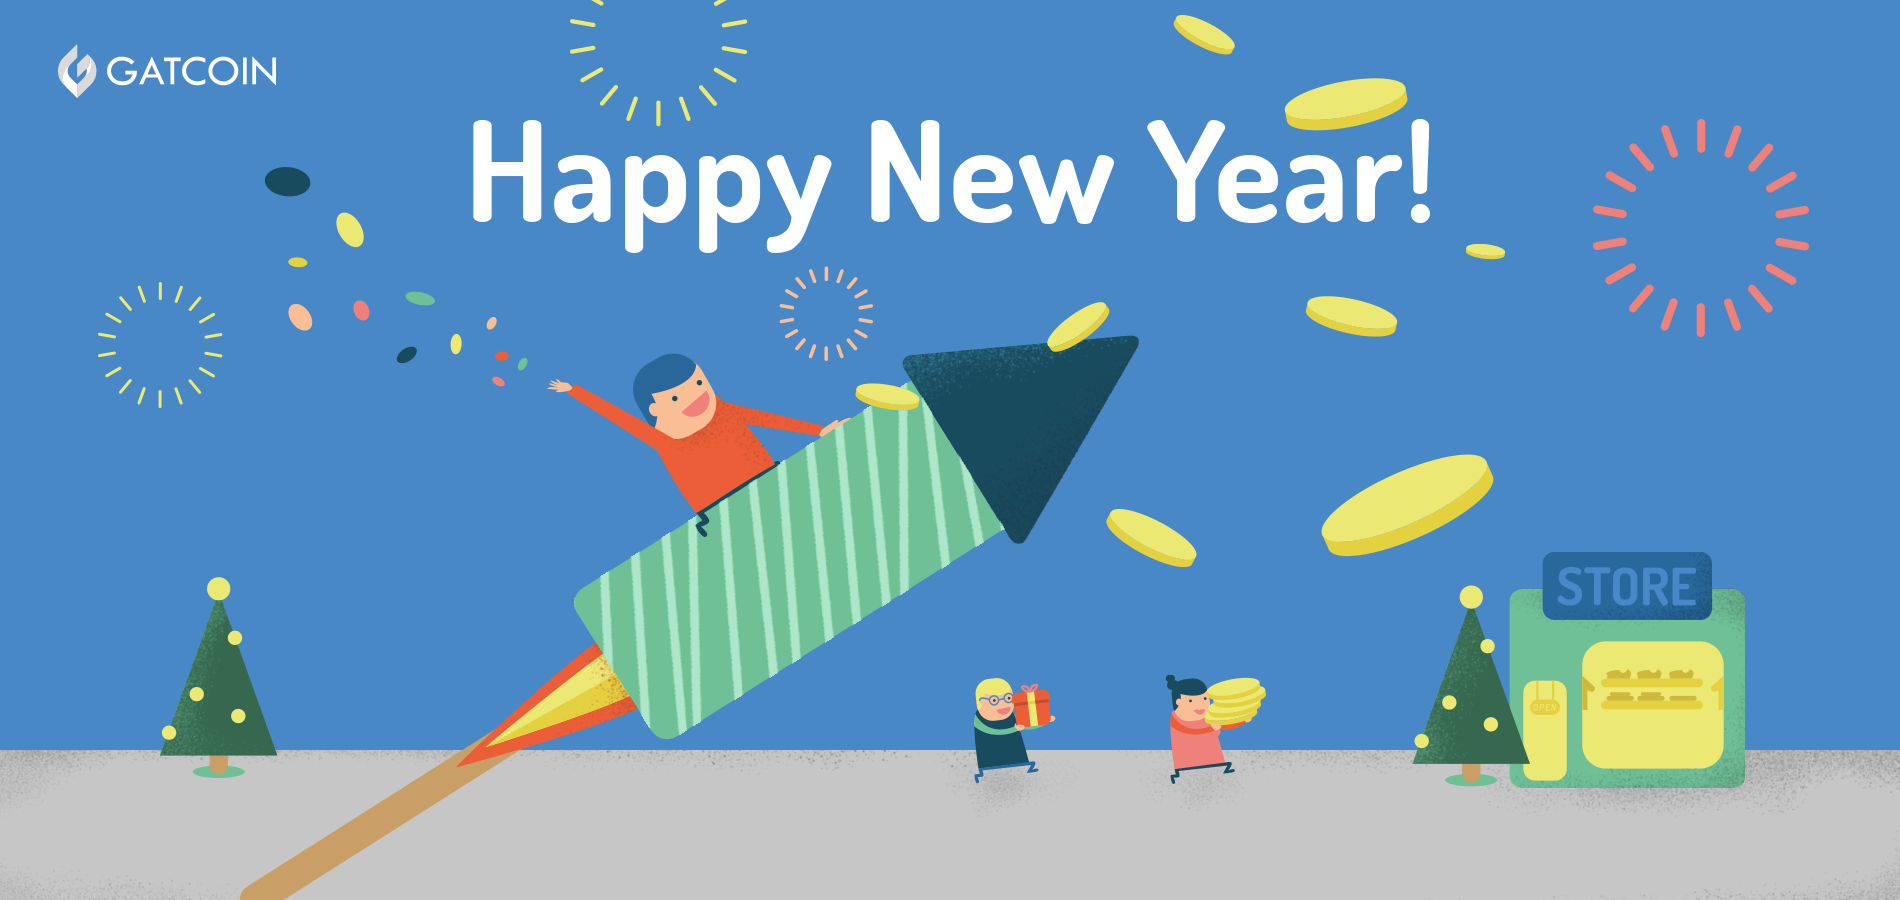 Happy_new_Year_GATCOINS_post